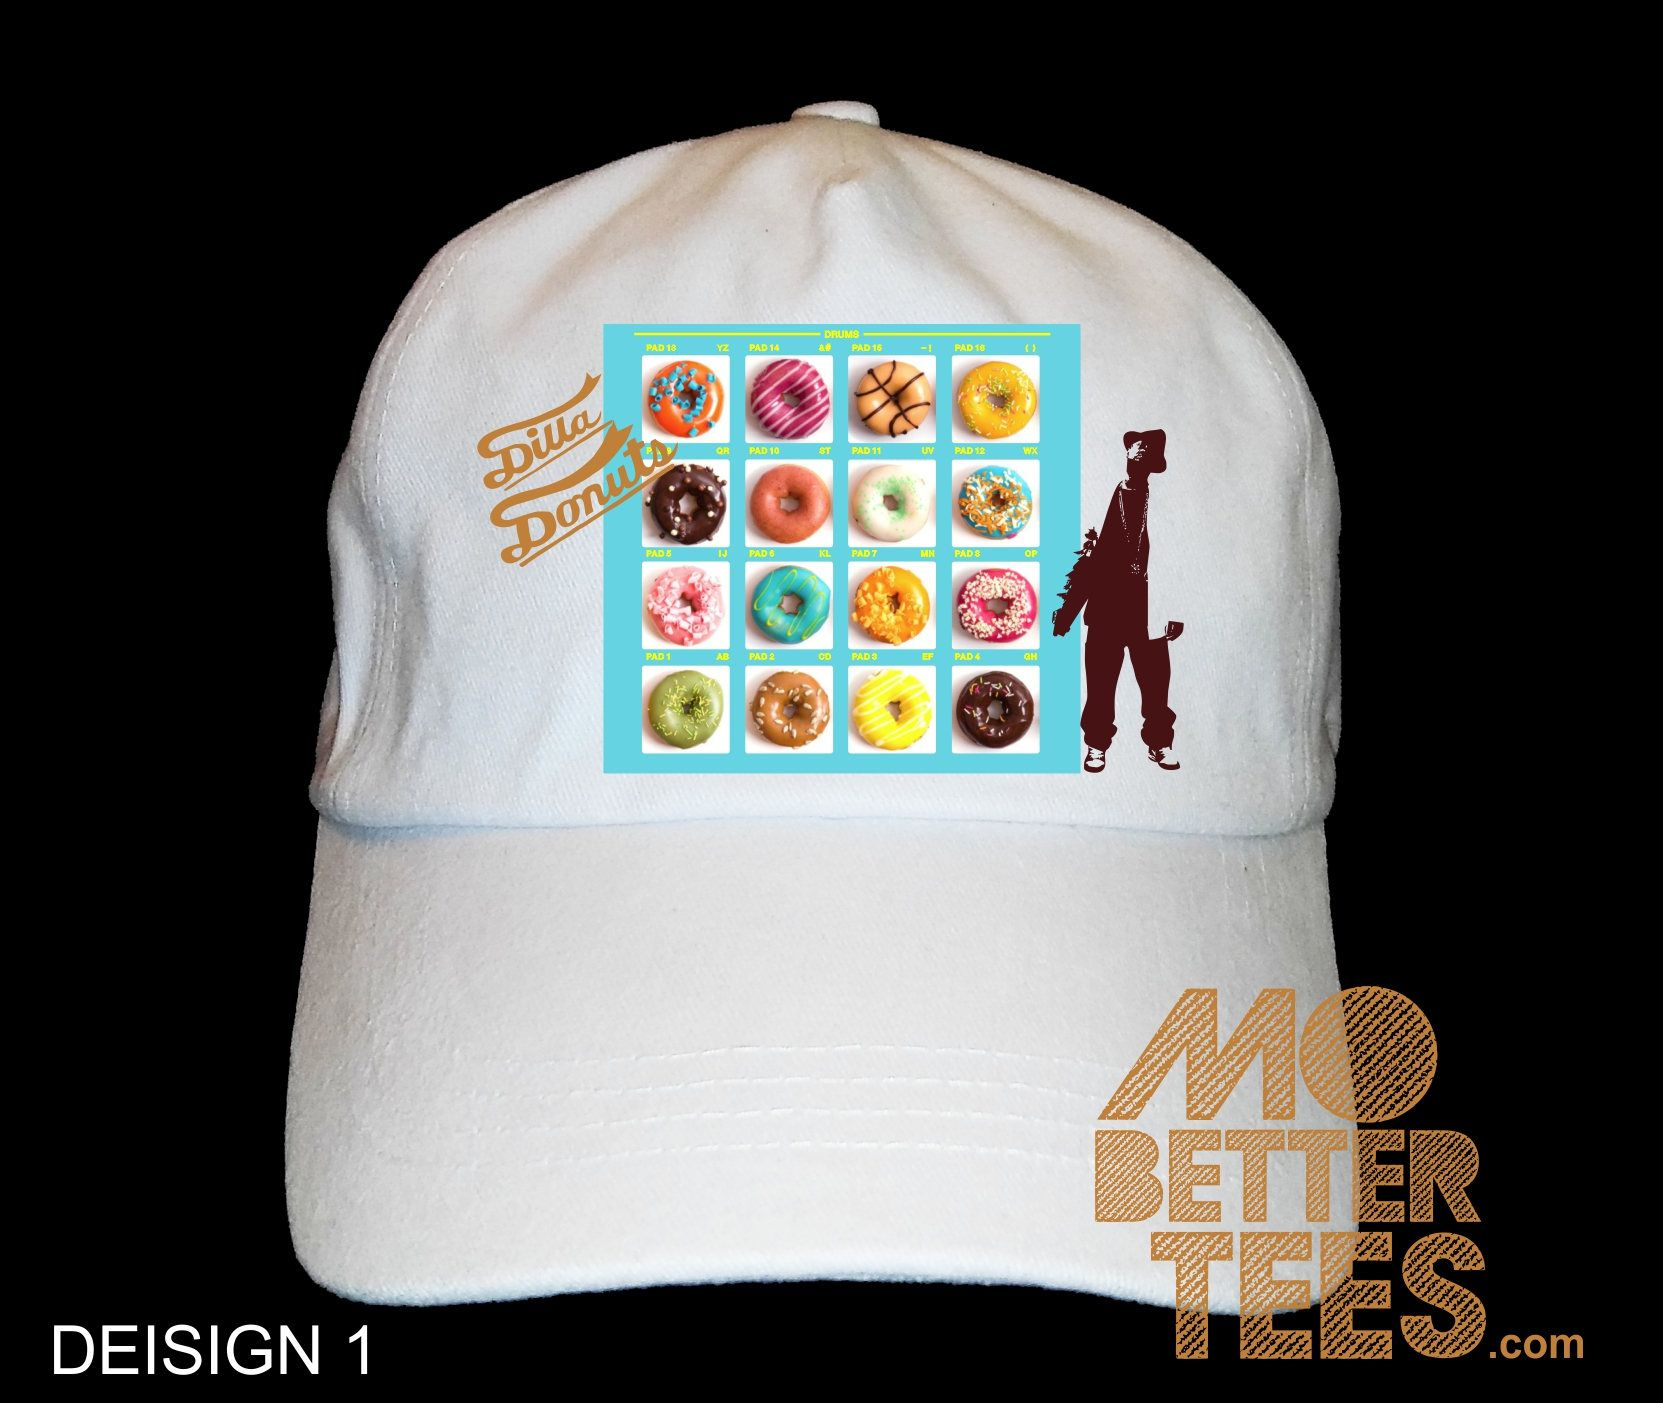 edc231b3389df Discover ideas about J Dilla. Saved by. Bonanza Marketplace. J Dilla MPC  Cartoon Dad Hat baseball cap choose from black or white ...